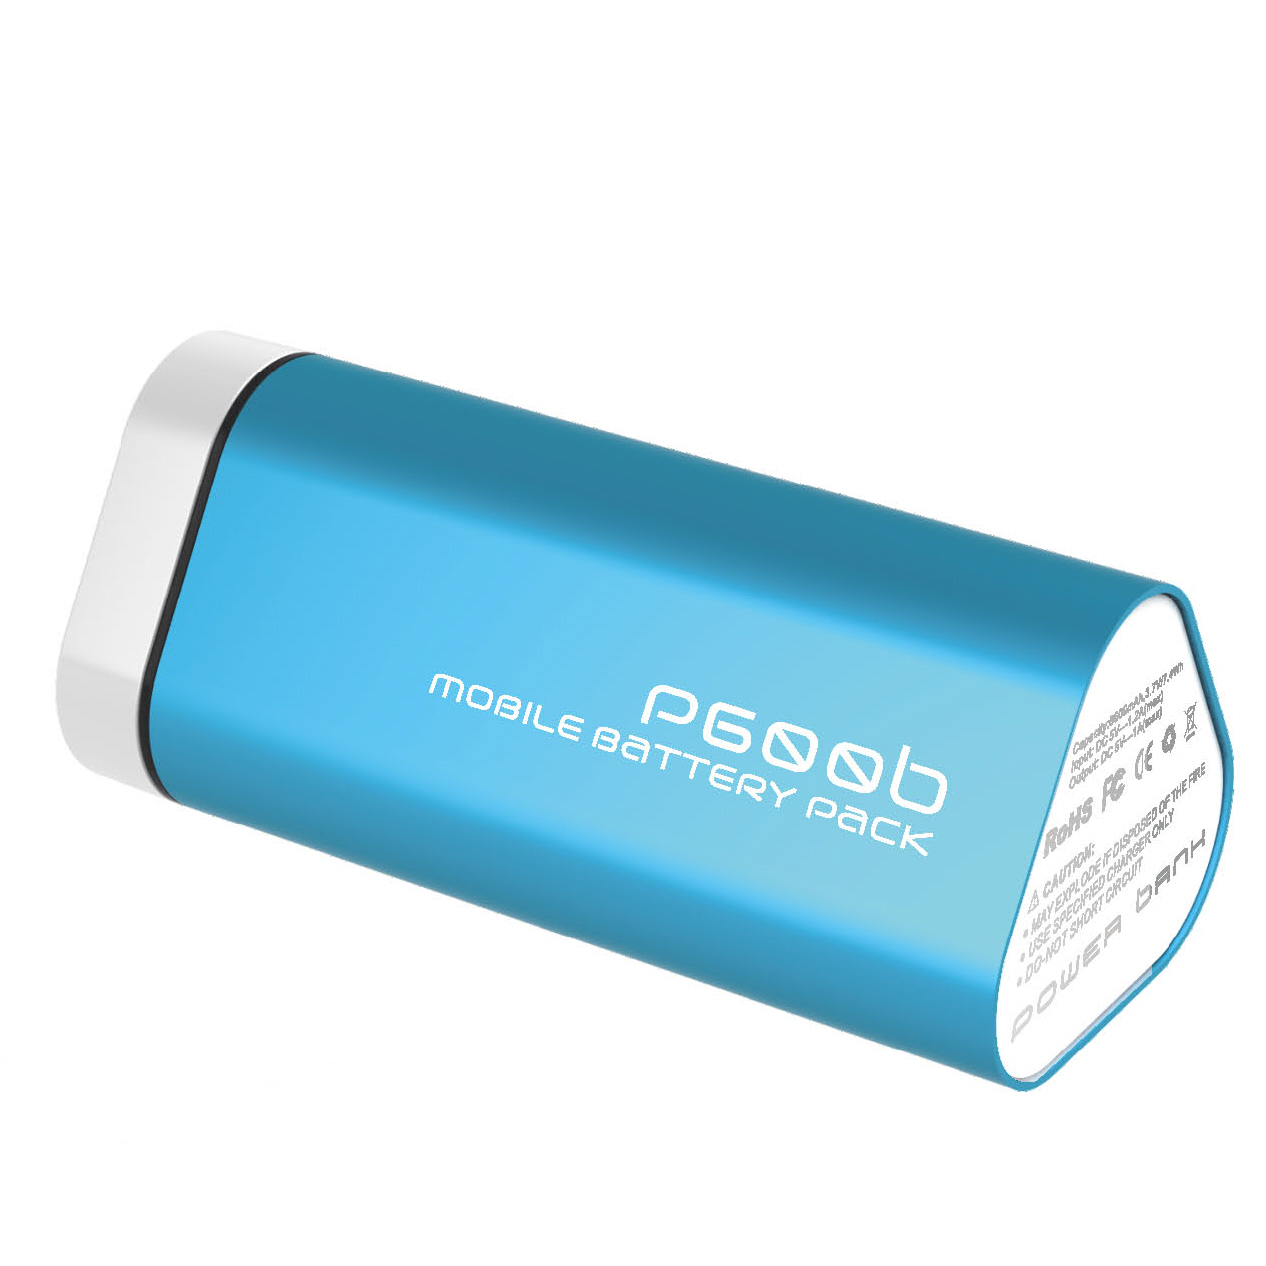 Exclusive Power Bank 600B (6600 mAh)